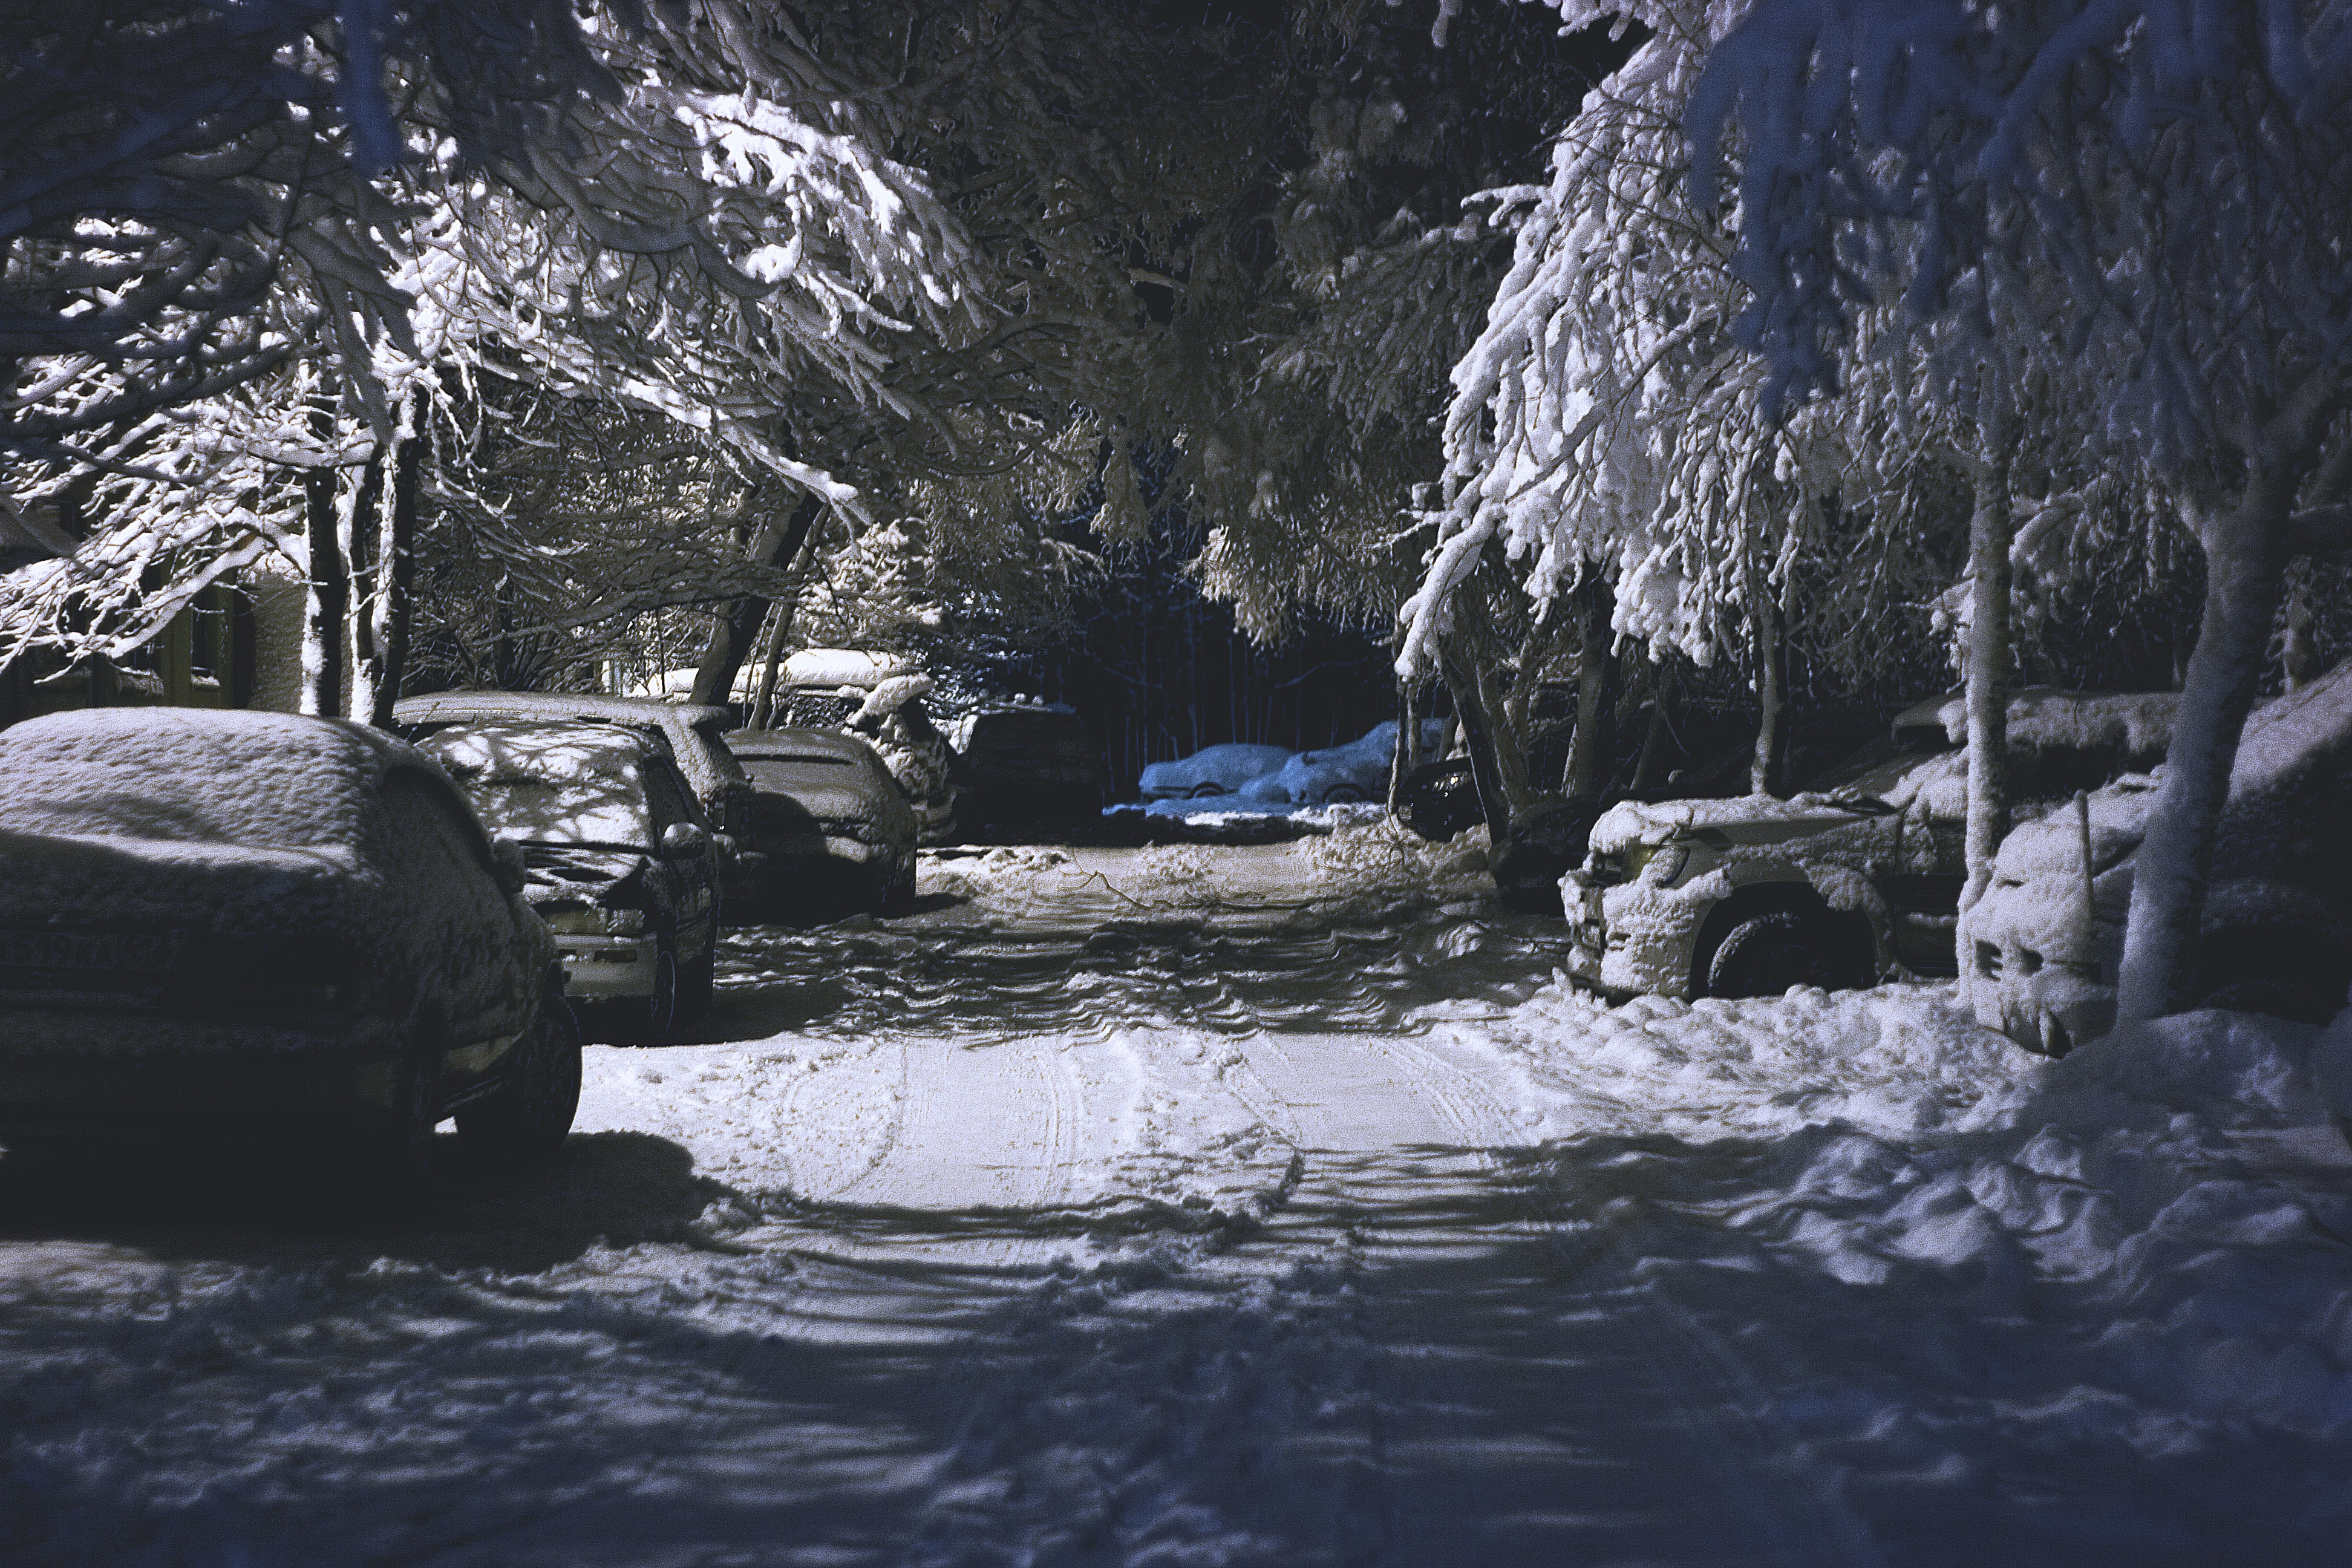 Cars parked along a road at night with snow covering the road, cars and trees